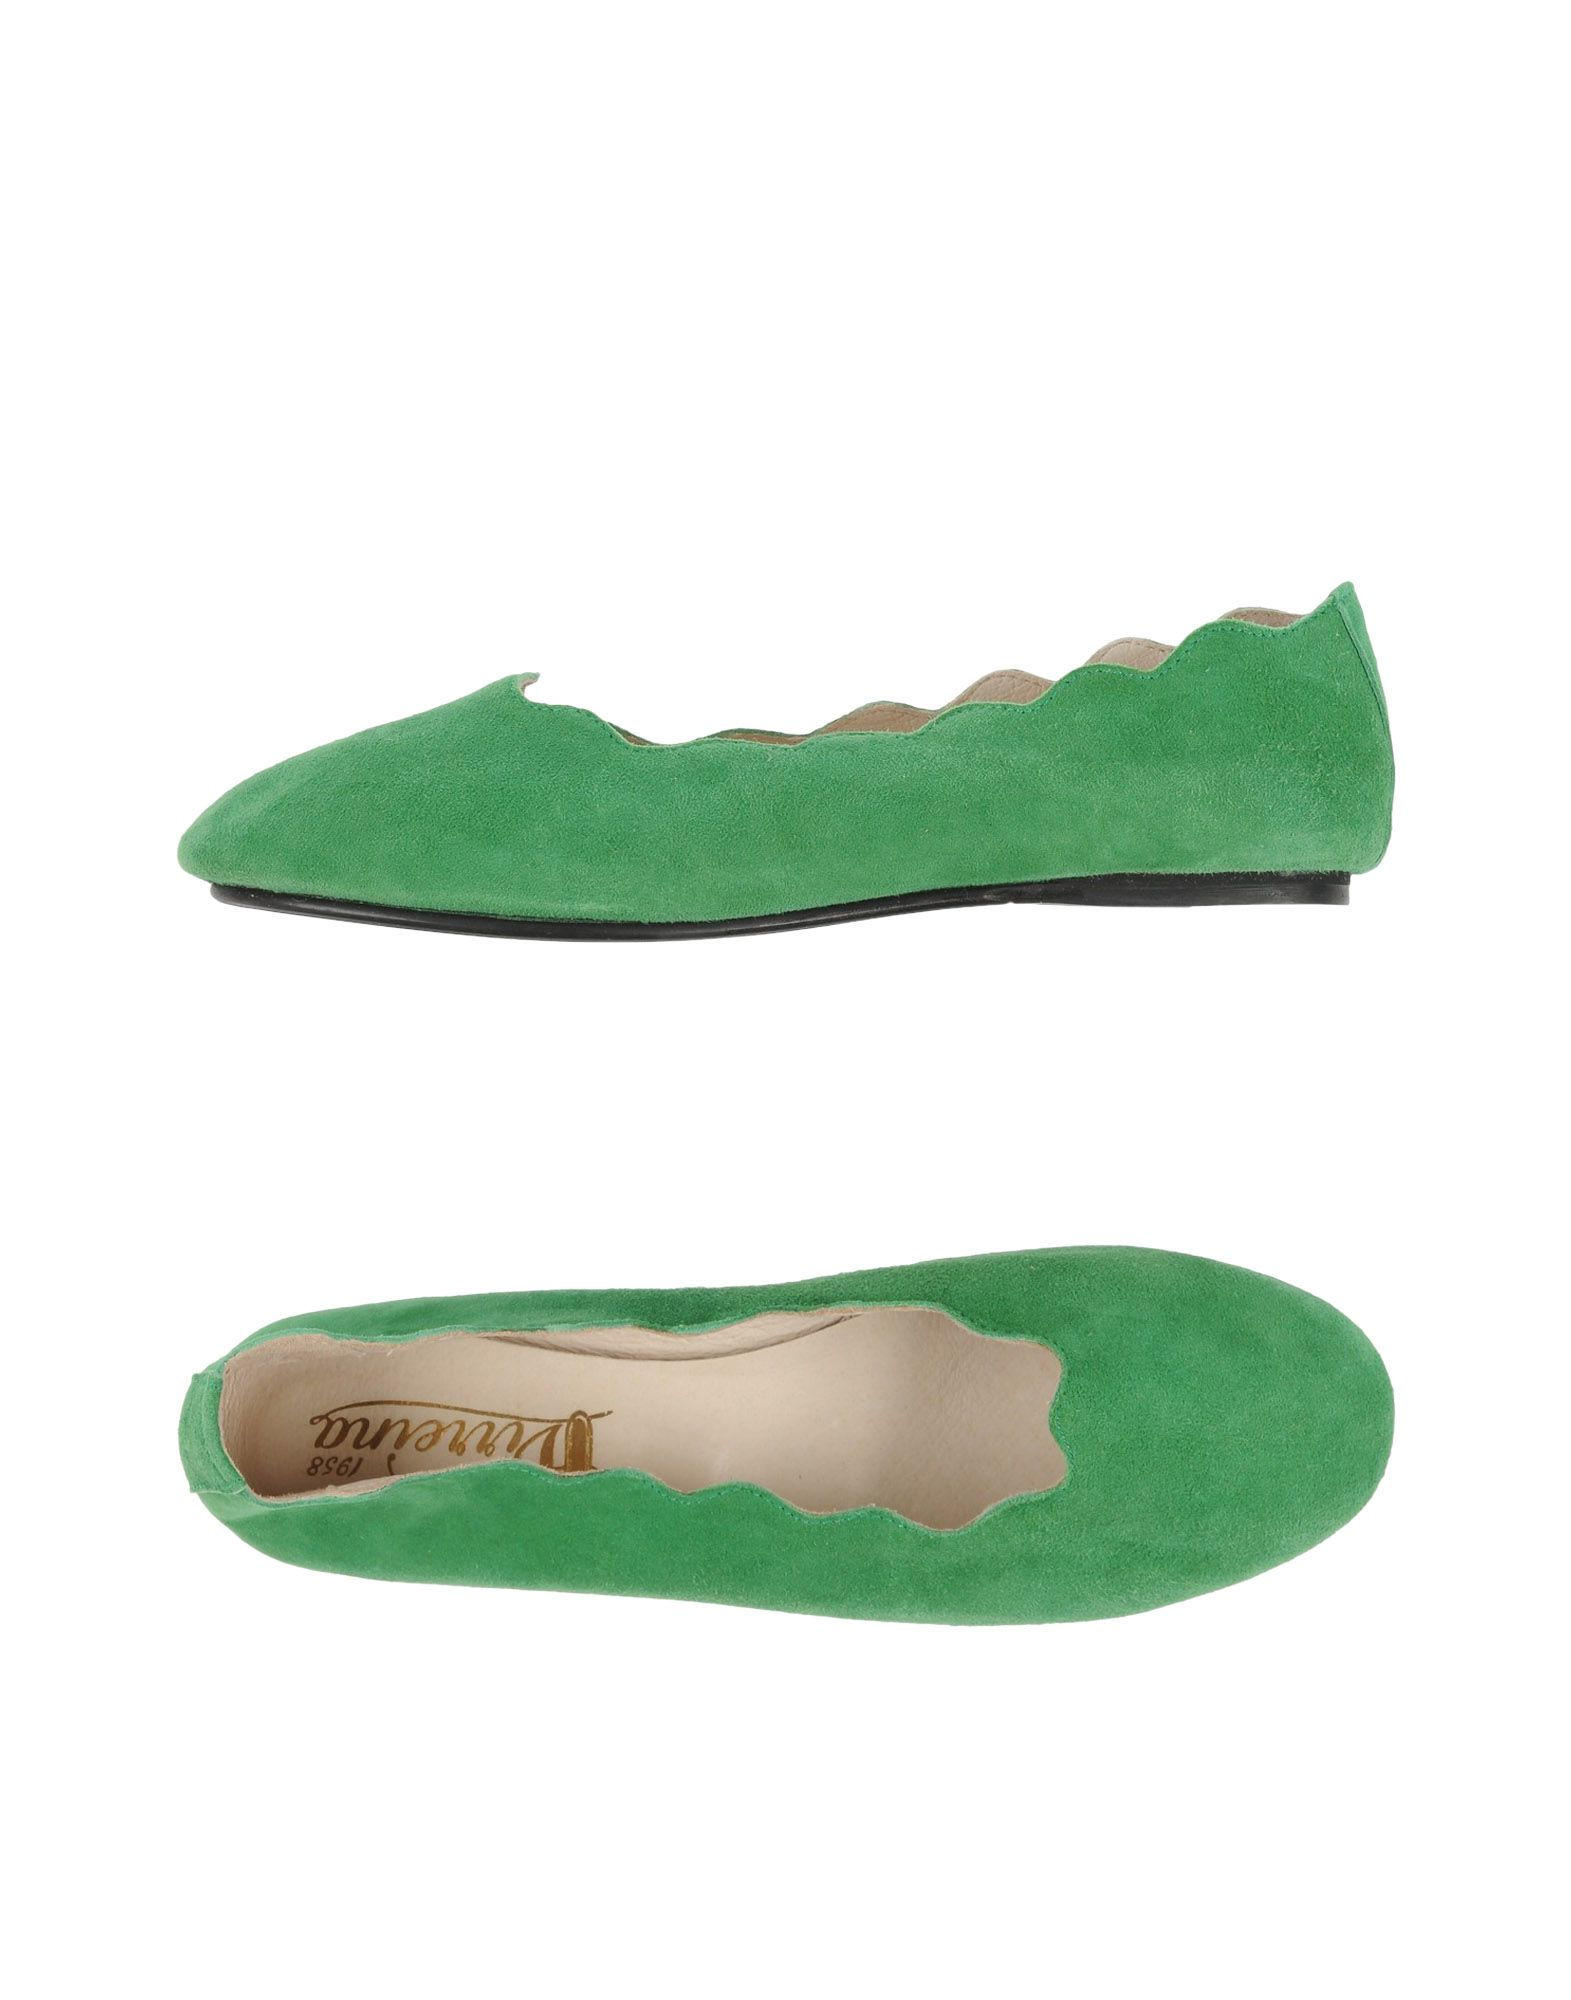 Find great deals on eBay for green ballet slippers. Shop with confidence.